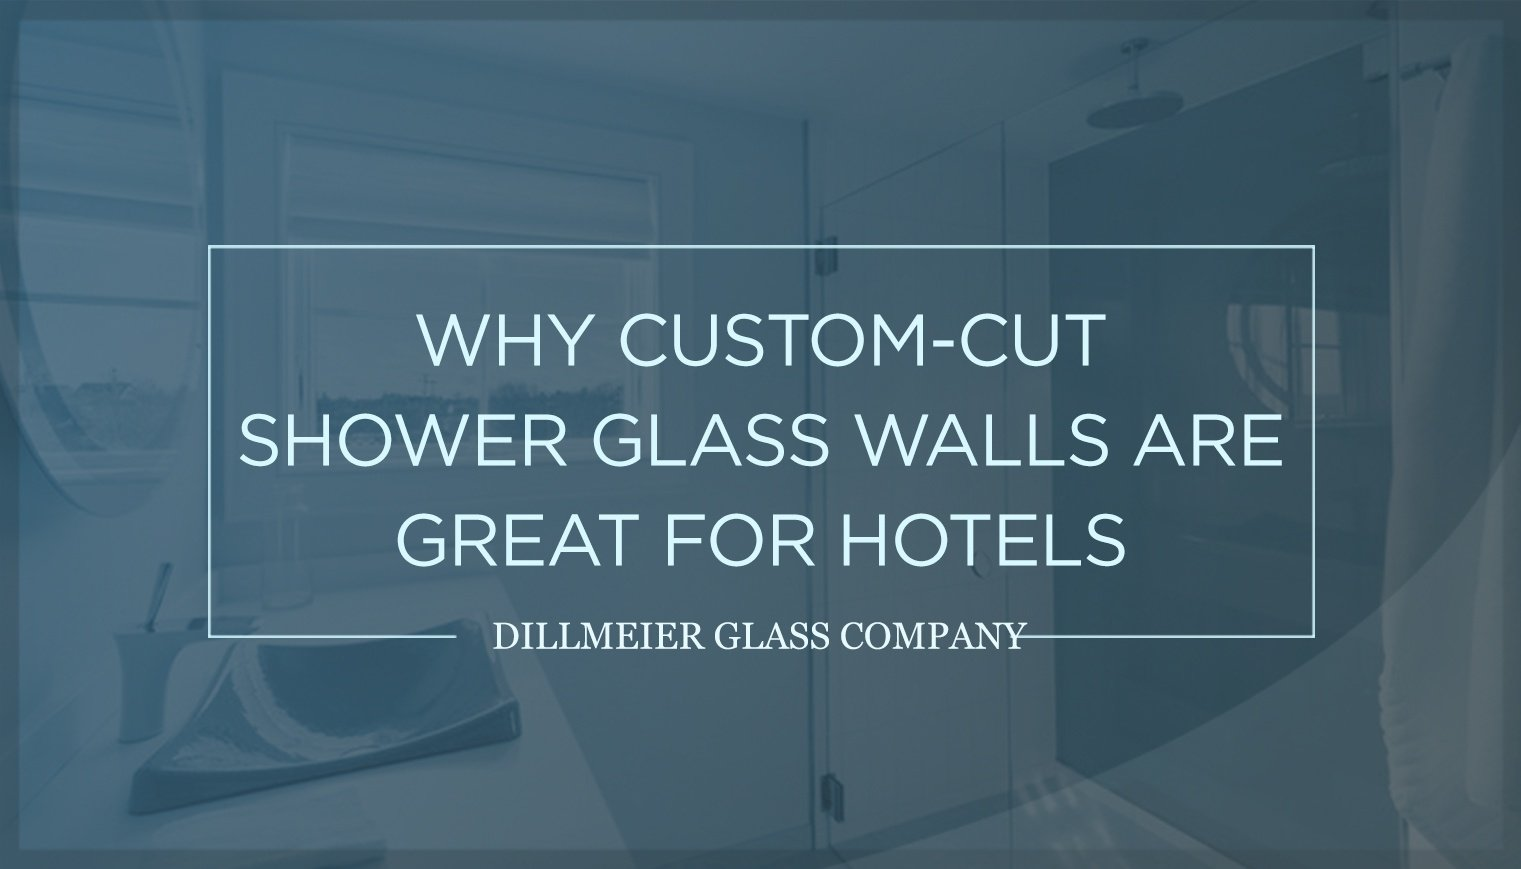 Why Custom-Cut Shower Glass Walls Are Great For Hotels